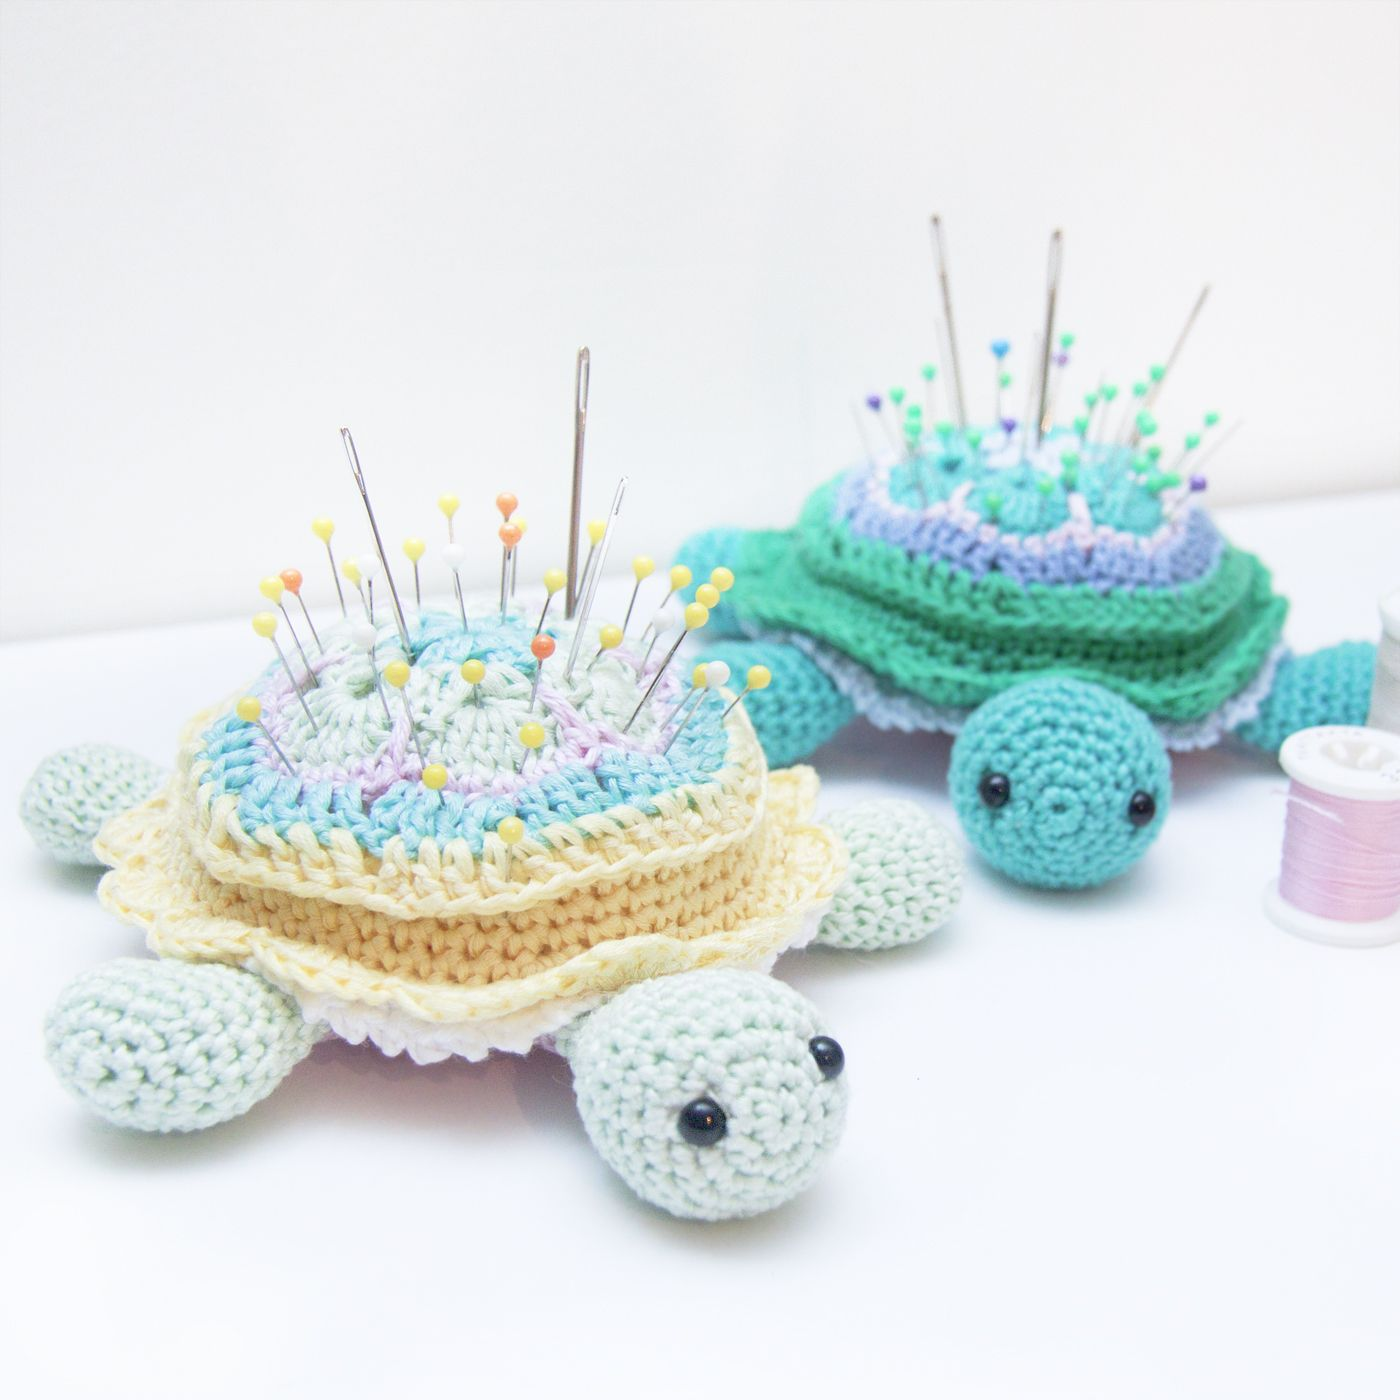 Crochet African Flower pincushion free pattern - Tina Turtle ...